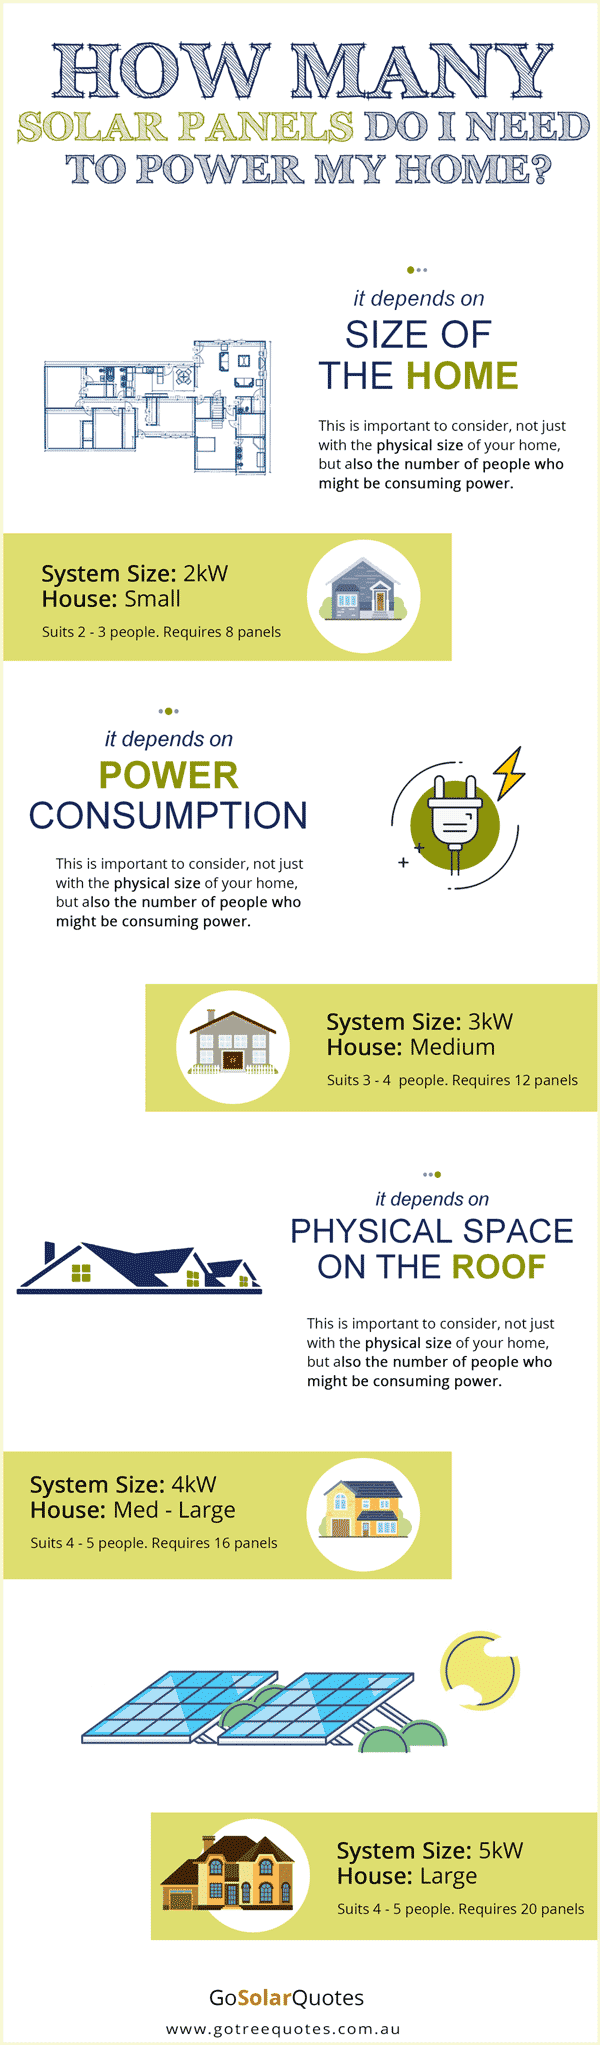 How-man-panels-do-I-need-to-power-my-home-infographic2